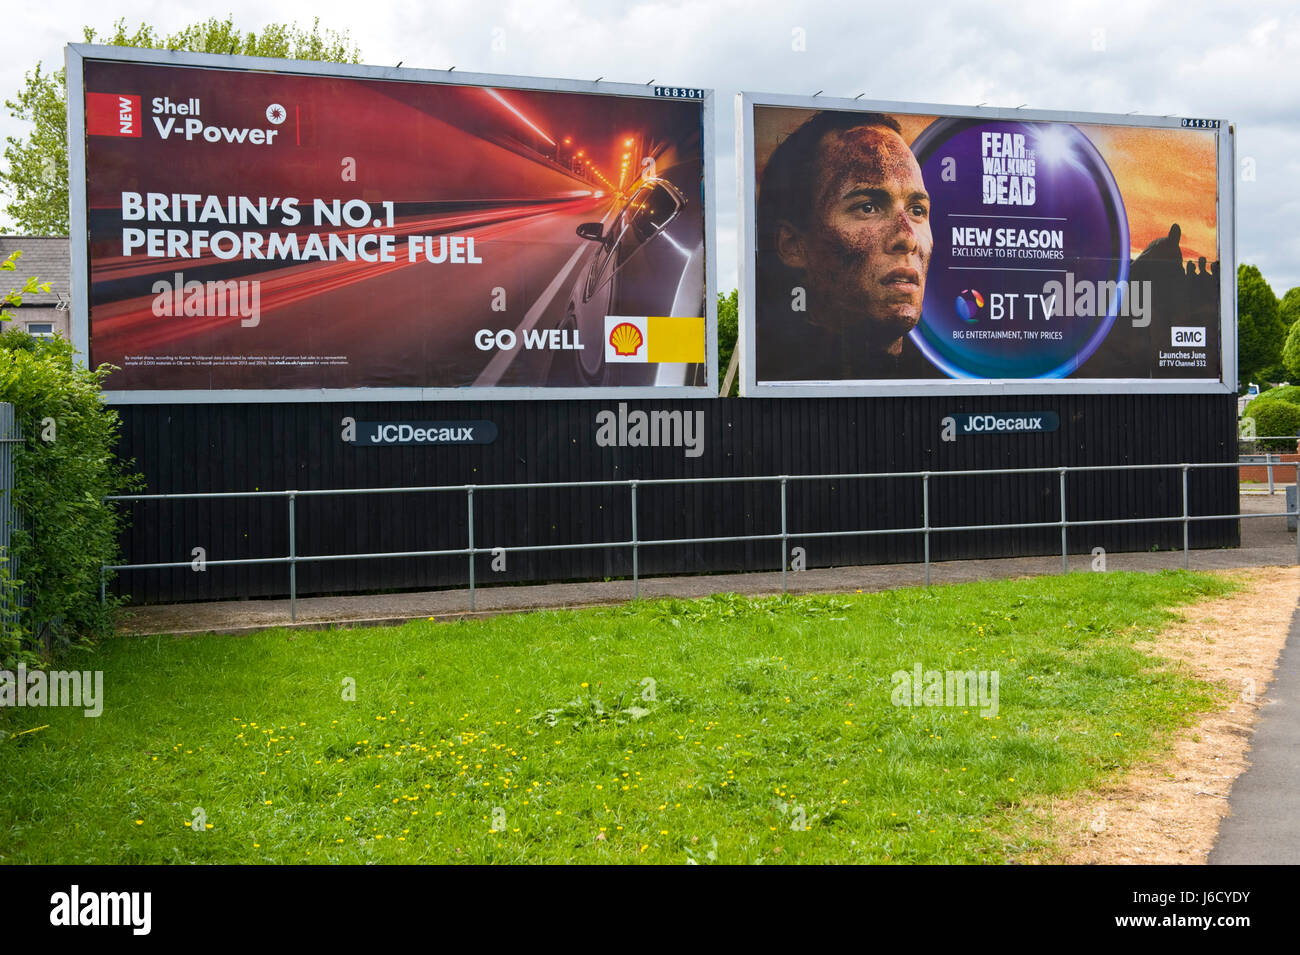 Shell & BT TV 48 sheet advertising billboards on JCDecaux site in Newport, South Wales, UK - Stock Image